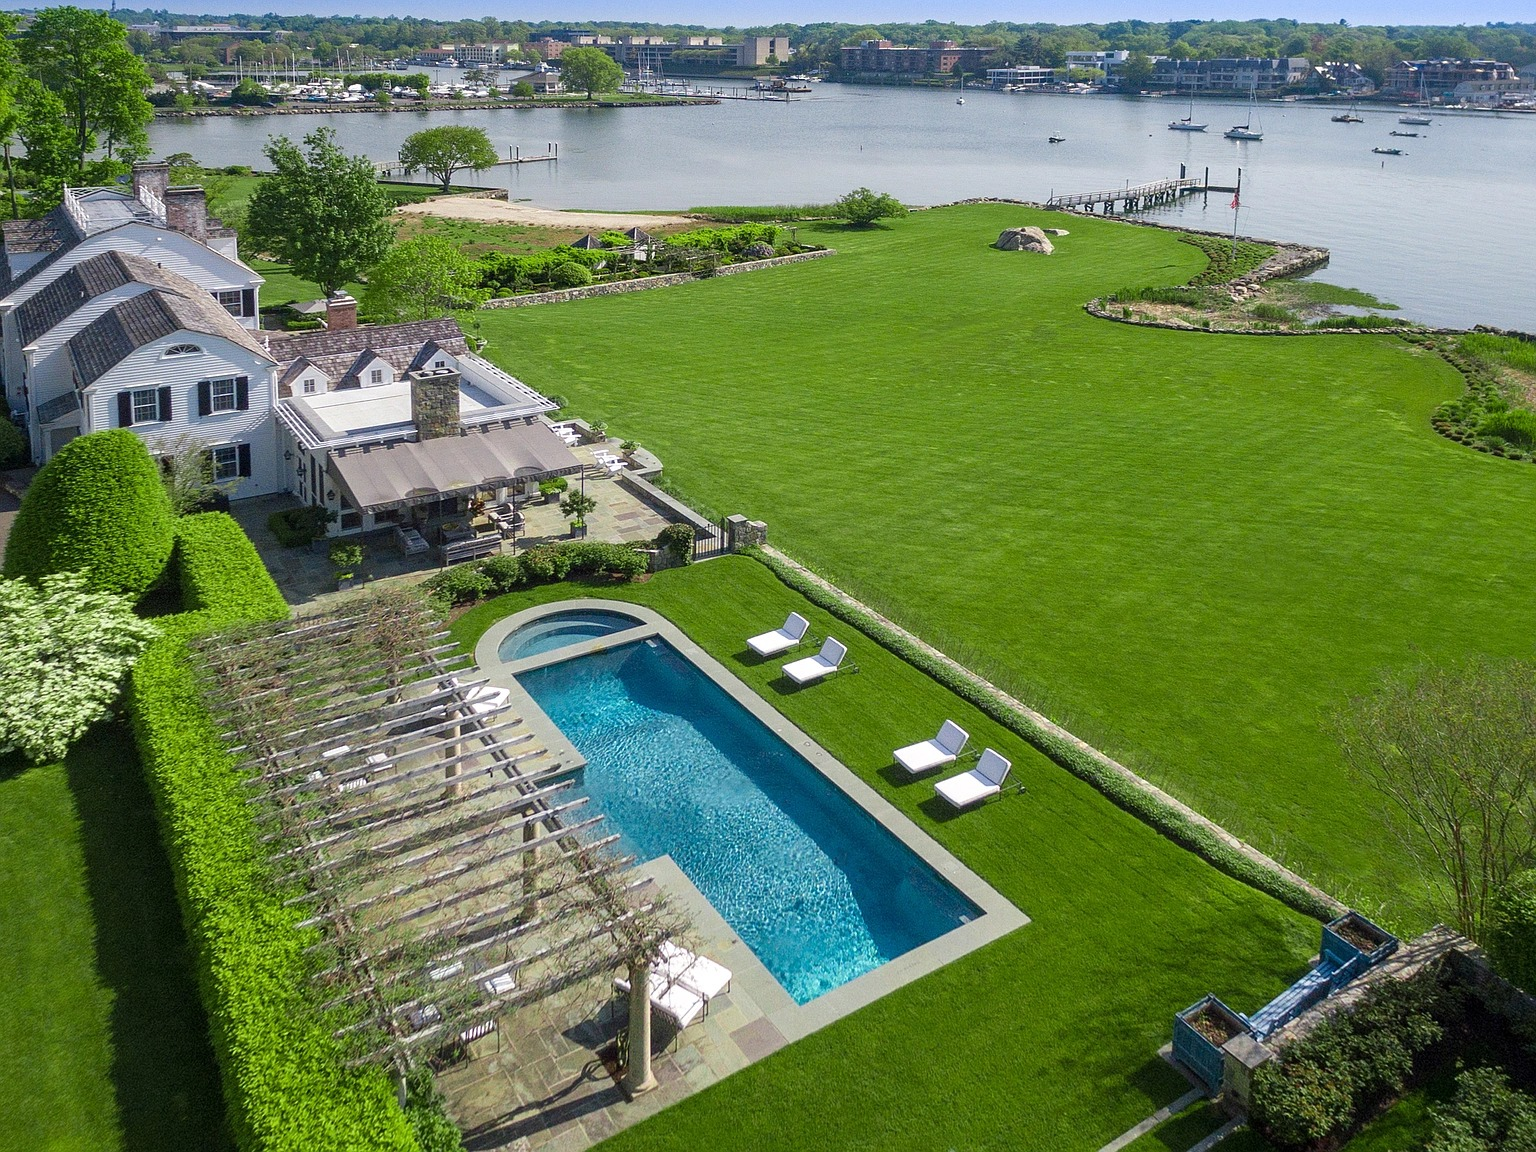 23 Smith Rd, Greenwich, CT 06830 - $39,500,000 home for sale, house images, photos and pics gallery